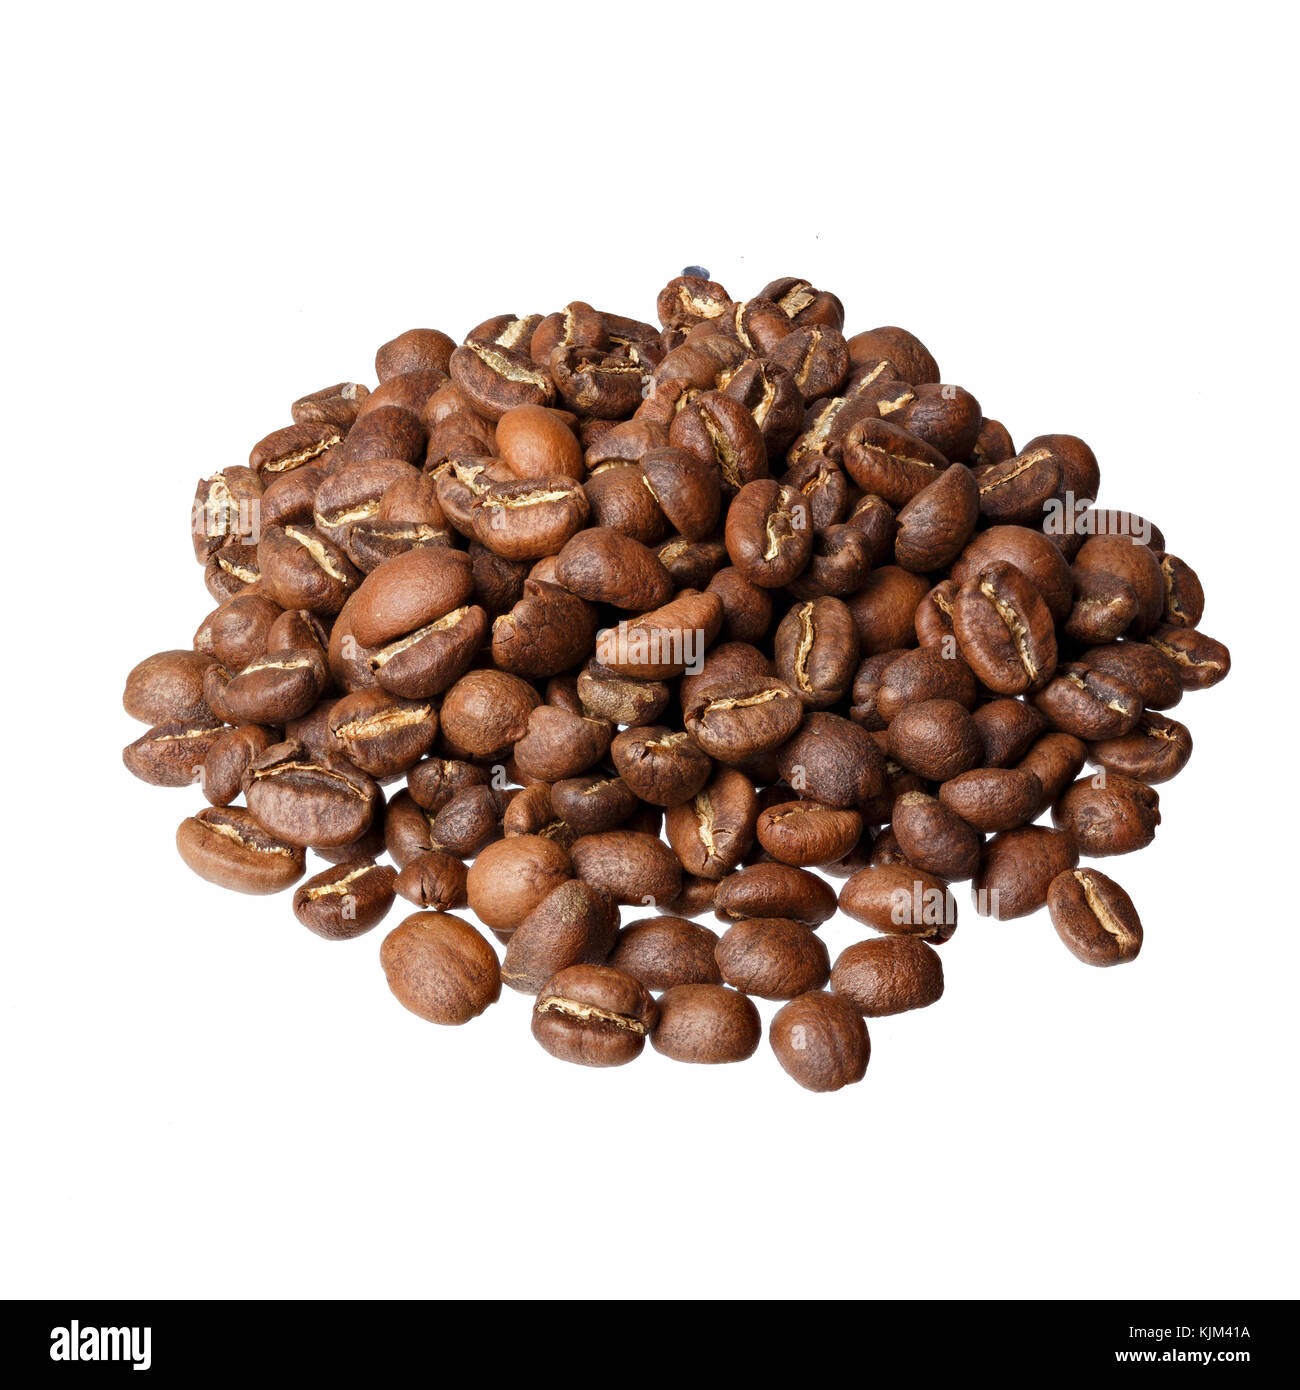 Ethiopia Yirgacheffe gourmet coffee on white background. - Stock Image